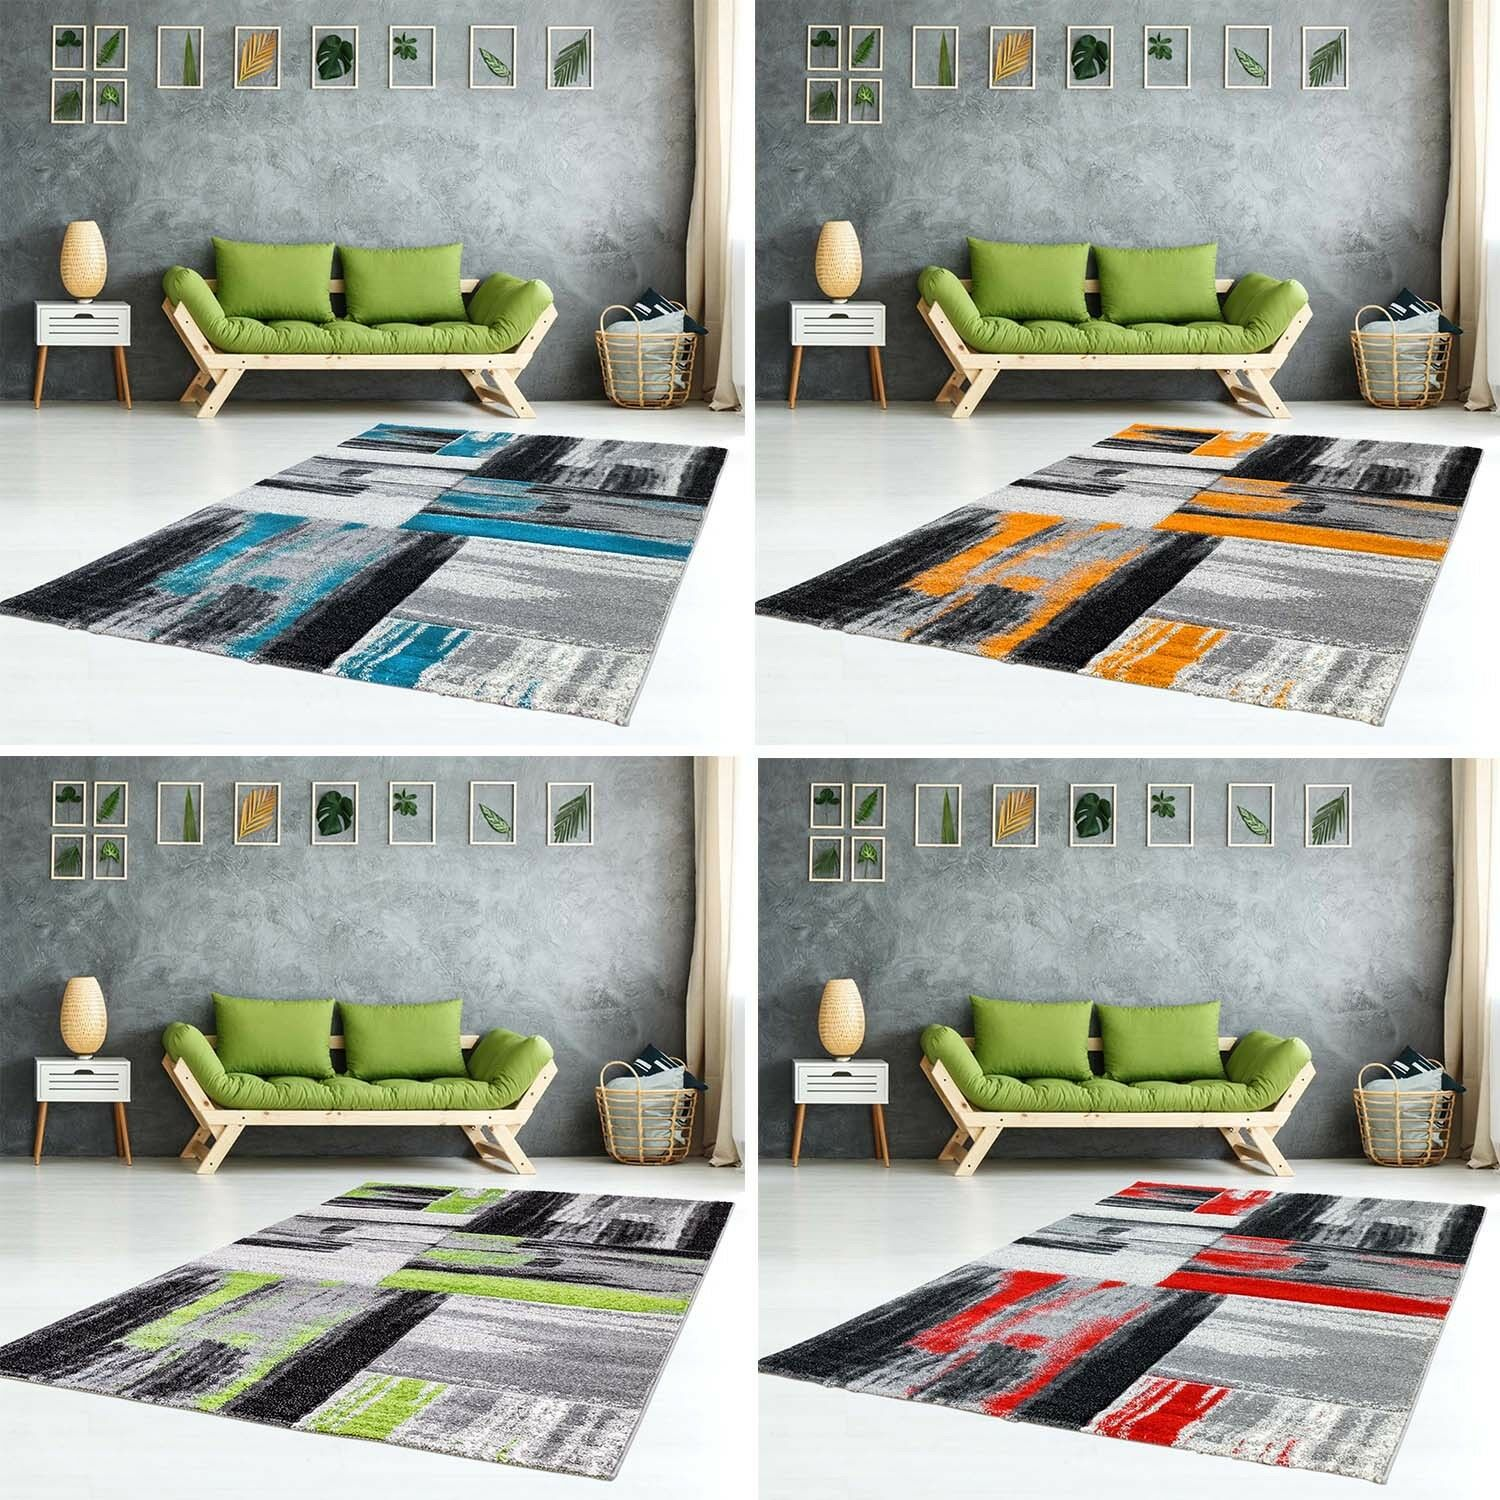 tapis moderne design salon secouer d grad de couleur rectangle niveau eur 28 56 picclick fr. Black Bedroom Furniture Sets. Home Design Ideas